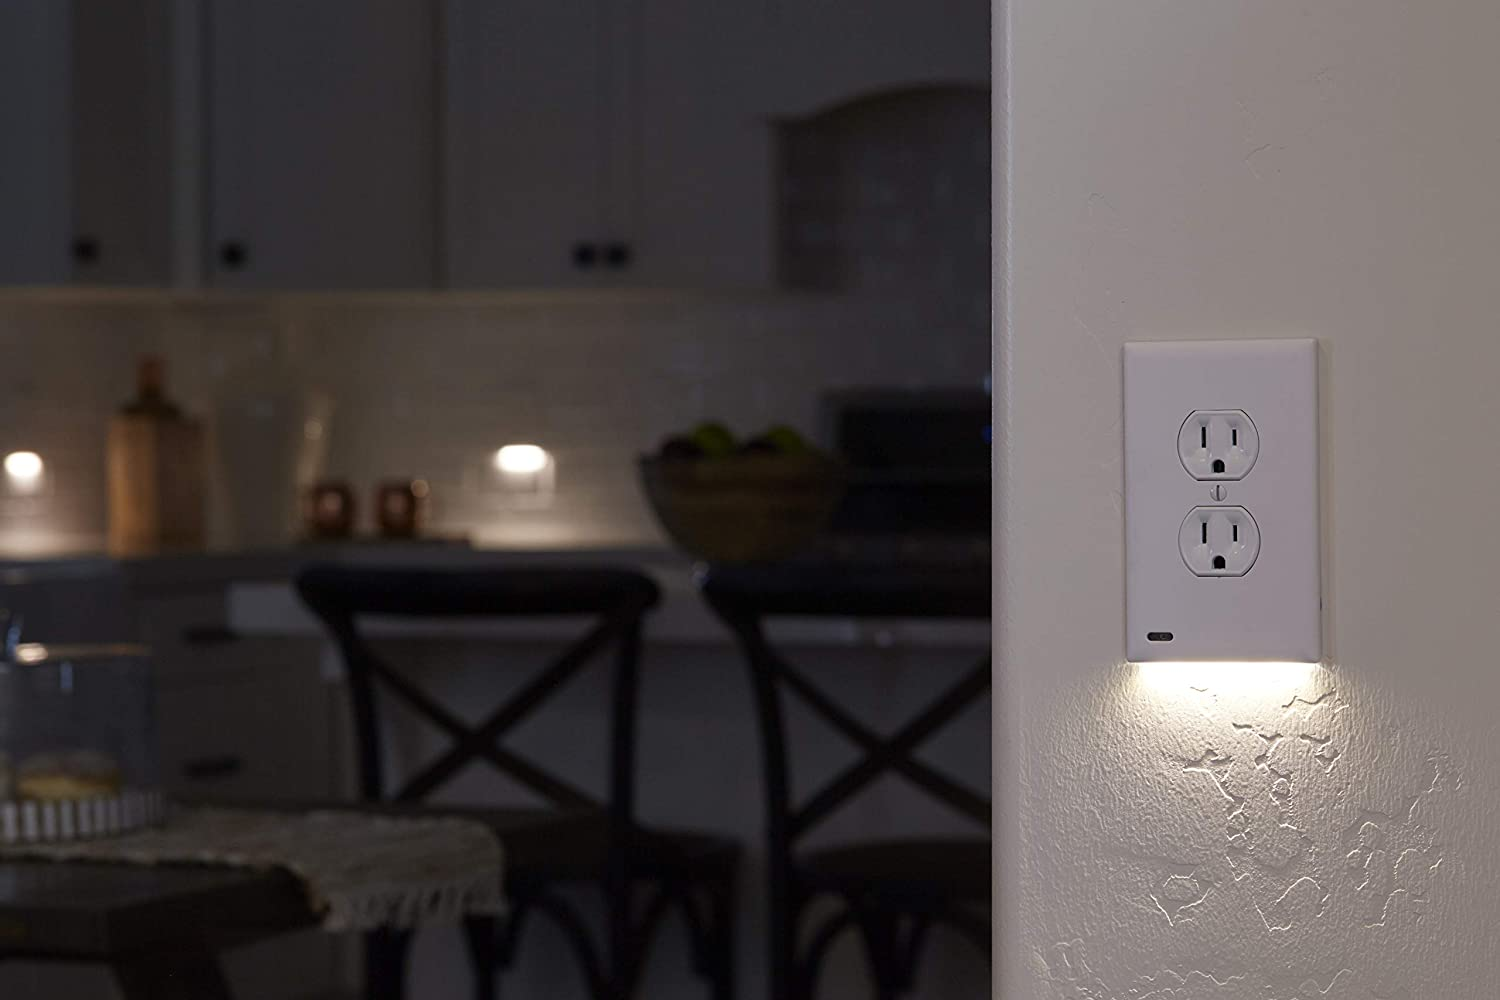 (50% OFF)Outlet Wall Plate With LED Night Lights